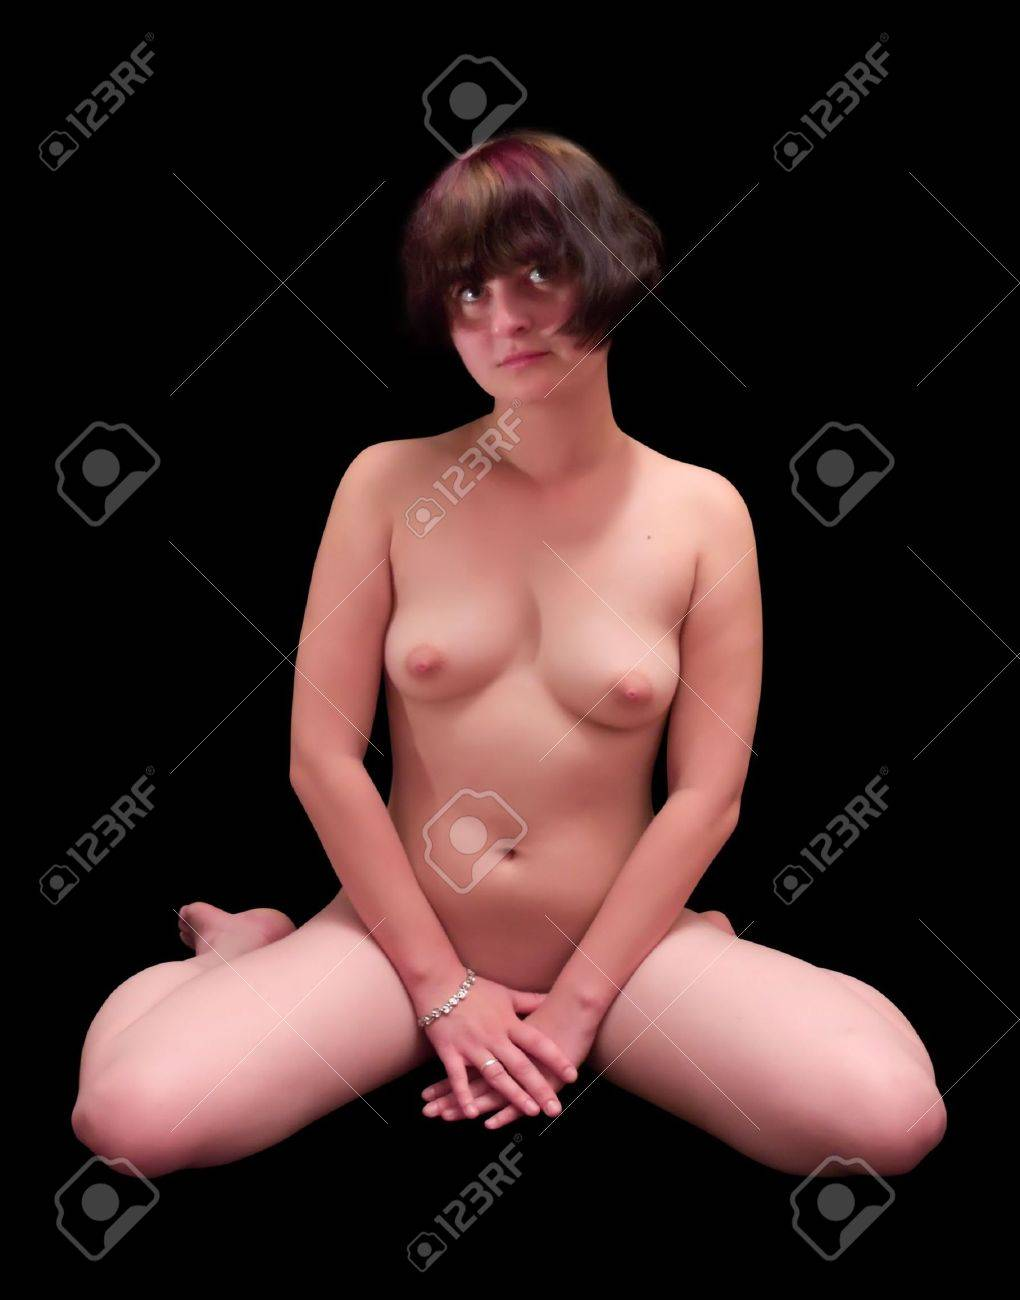 Young nudity